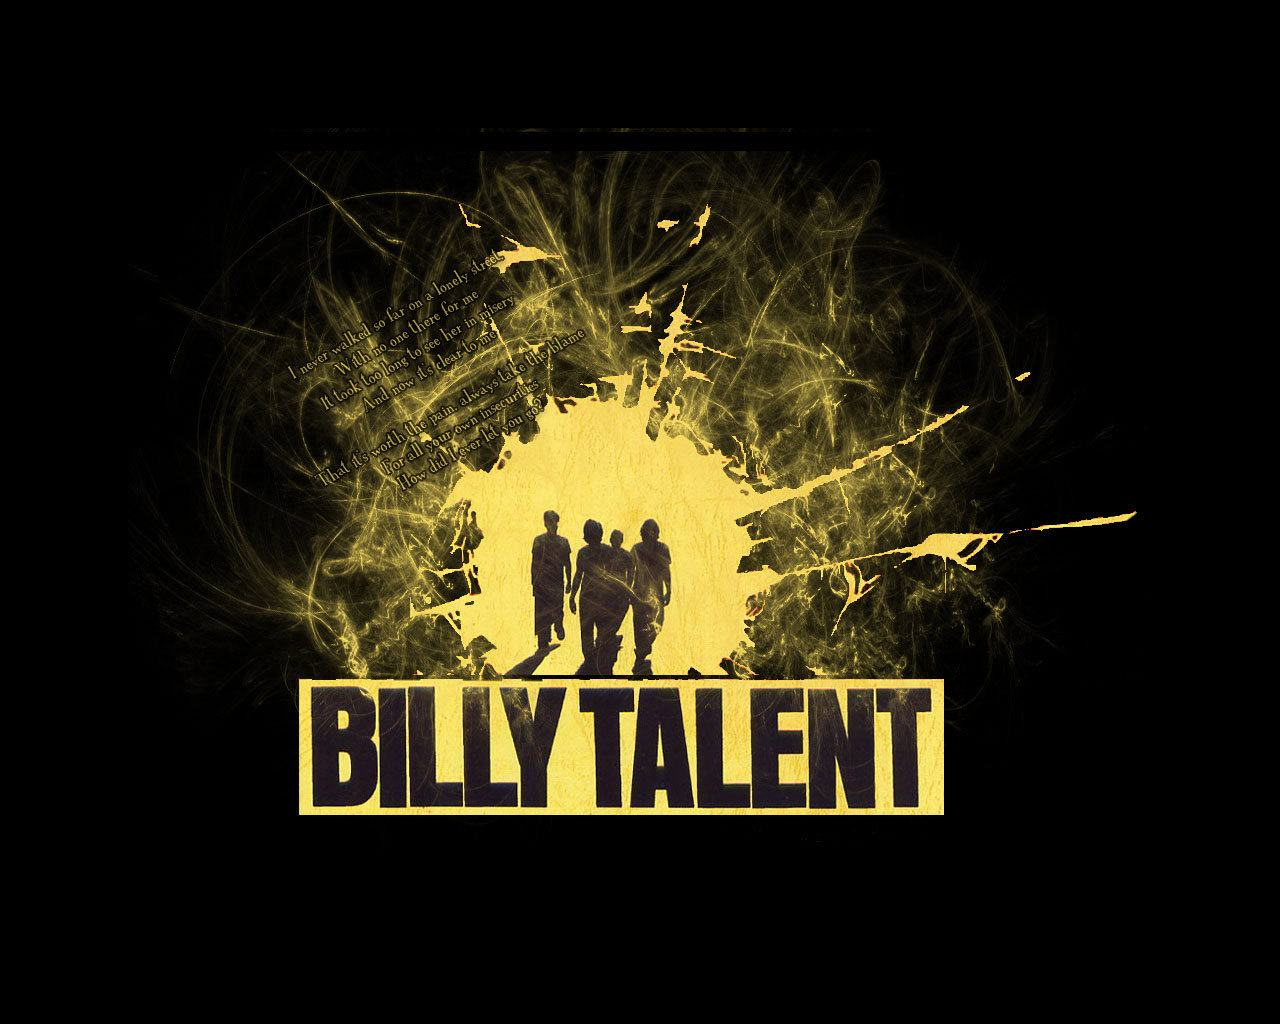 Обои Billy Talent 1280x1024